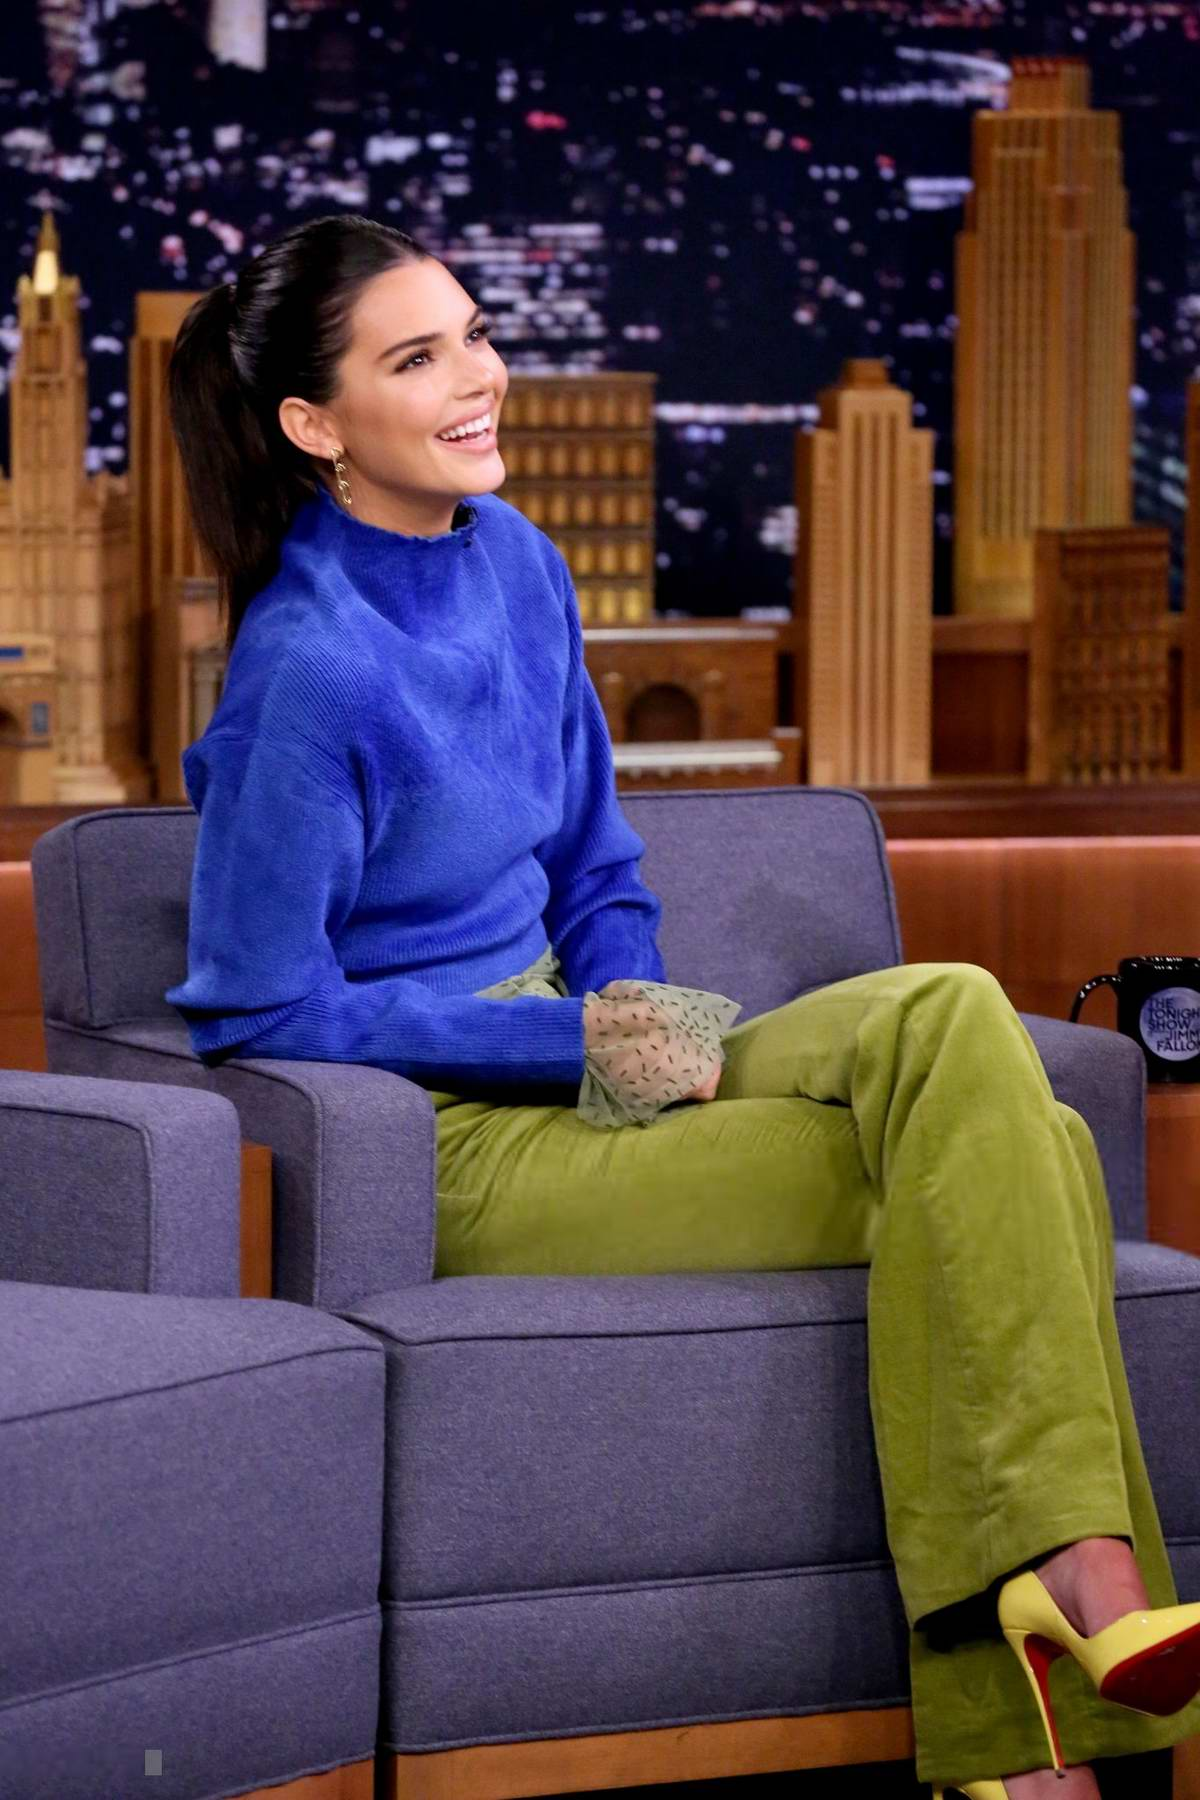 Kendall Jenner visits 'The Tonight Show Starring Jimmy Fallon' in New York City